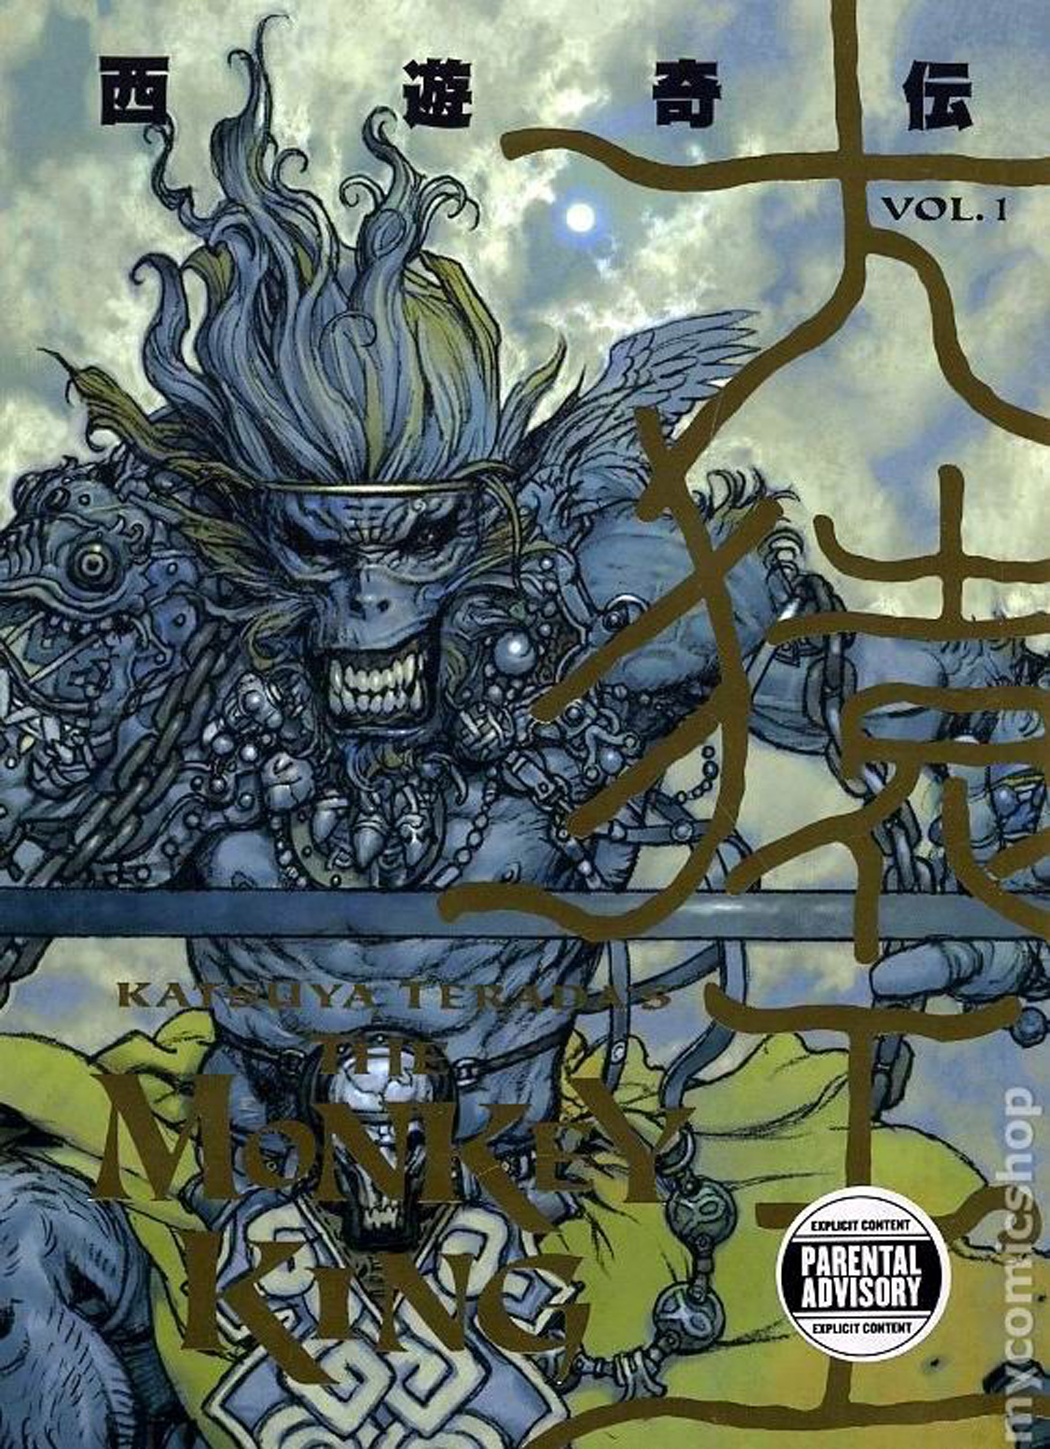 KATSUYA TERADA THE MONKEY KING TP VOL 01